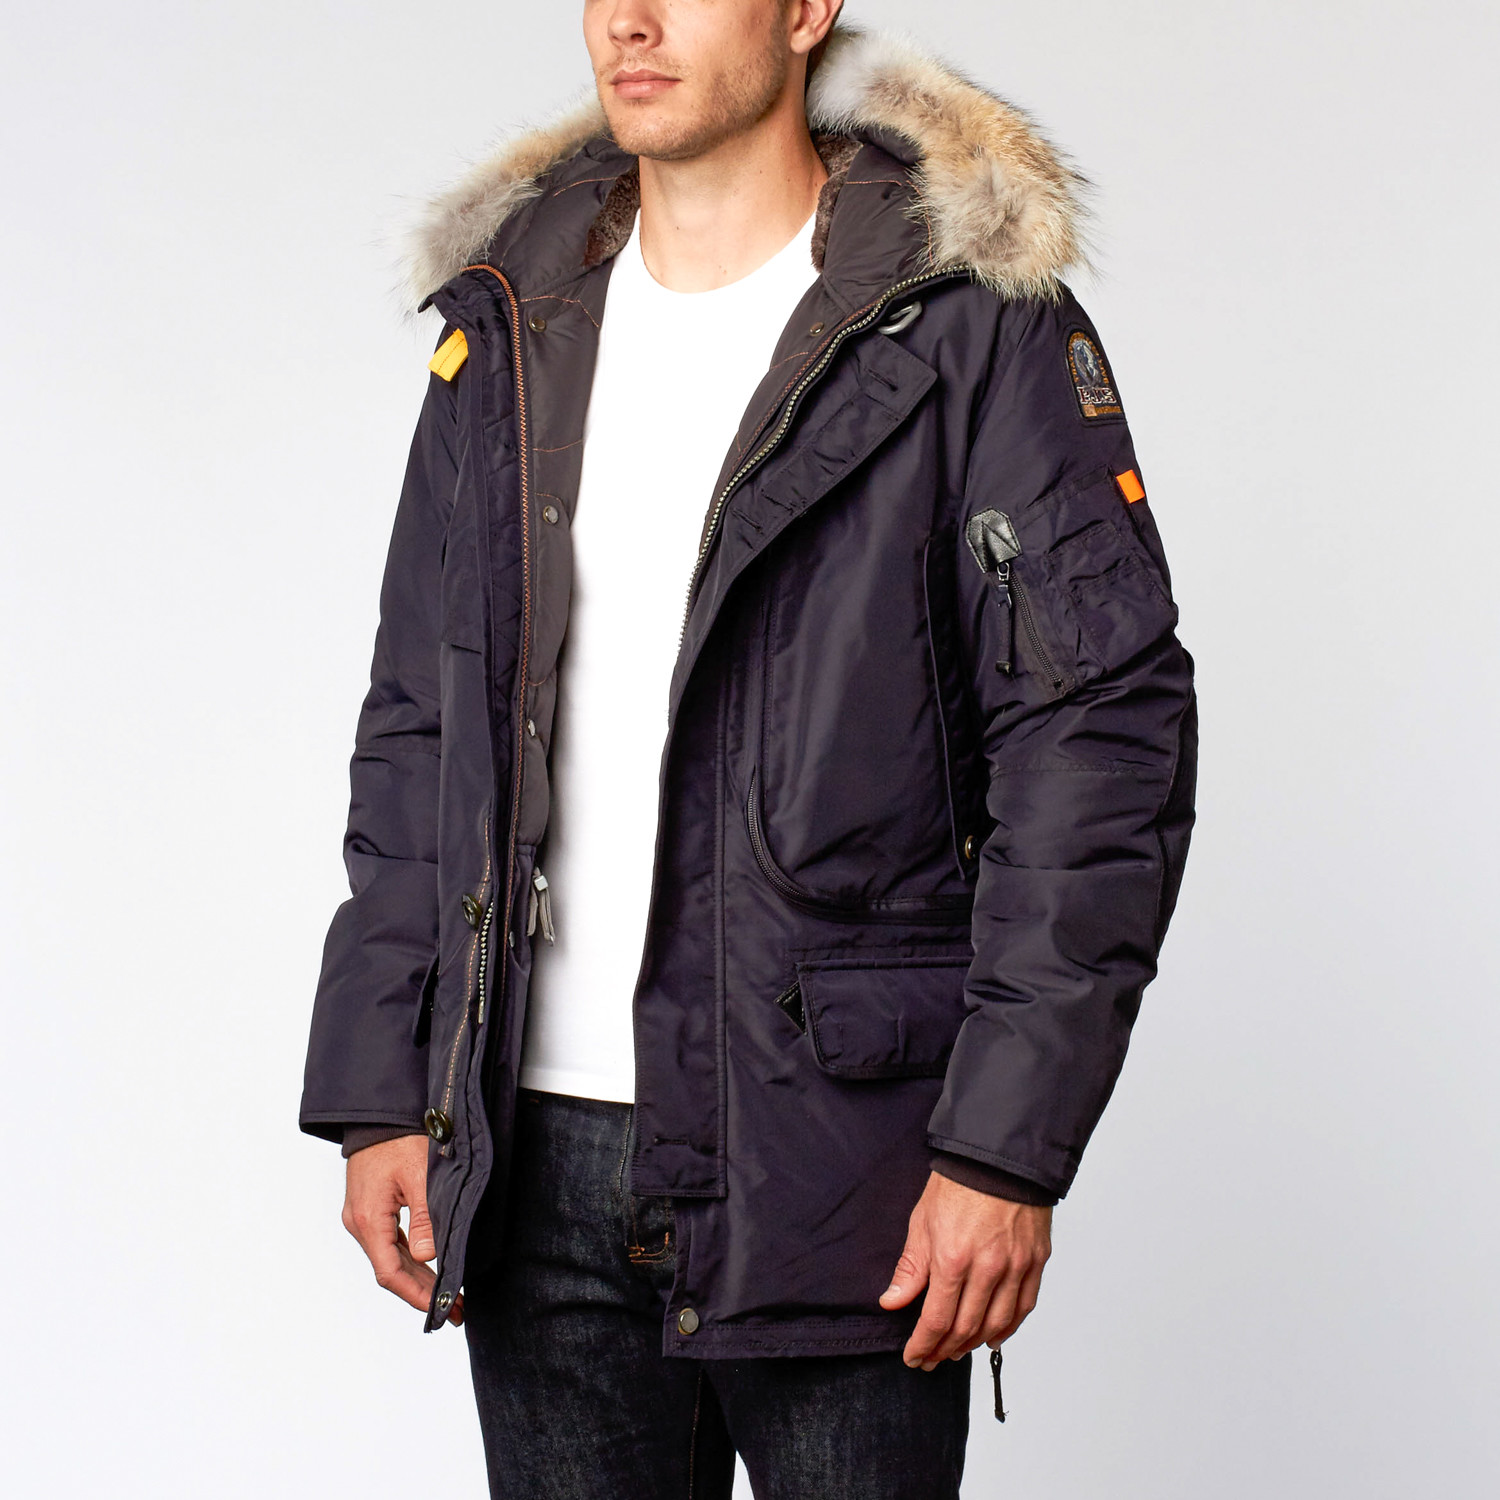 Kodiak Fur Trimmed Nylon Jacket // Navy (2XL)